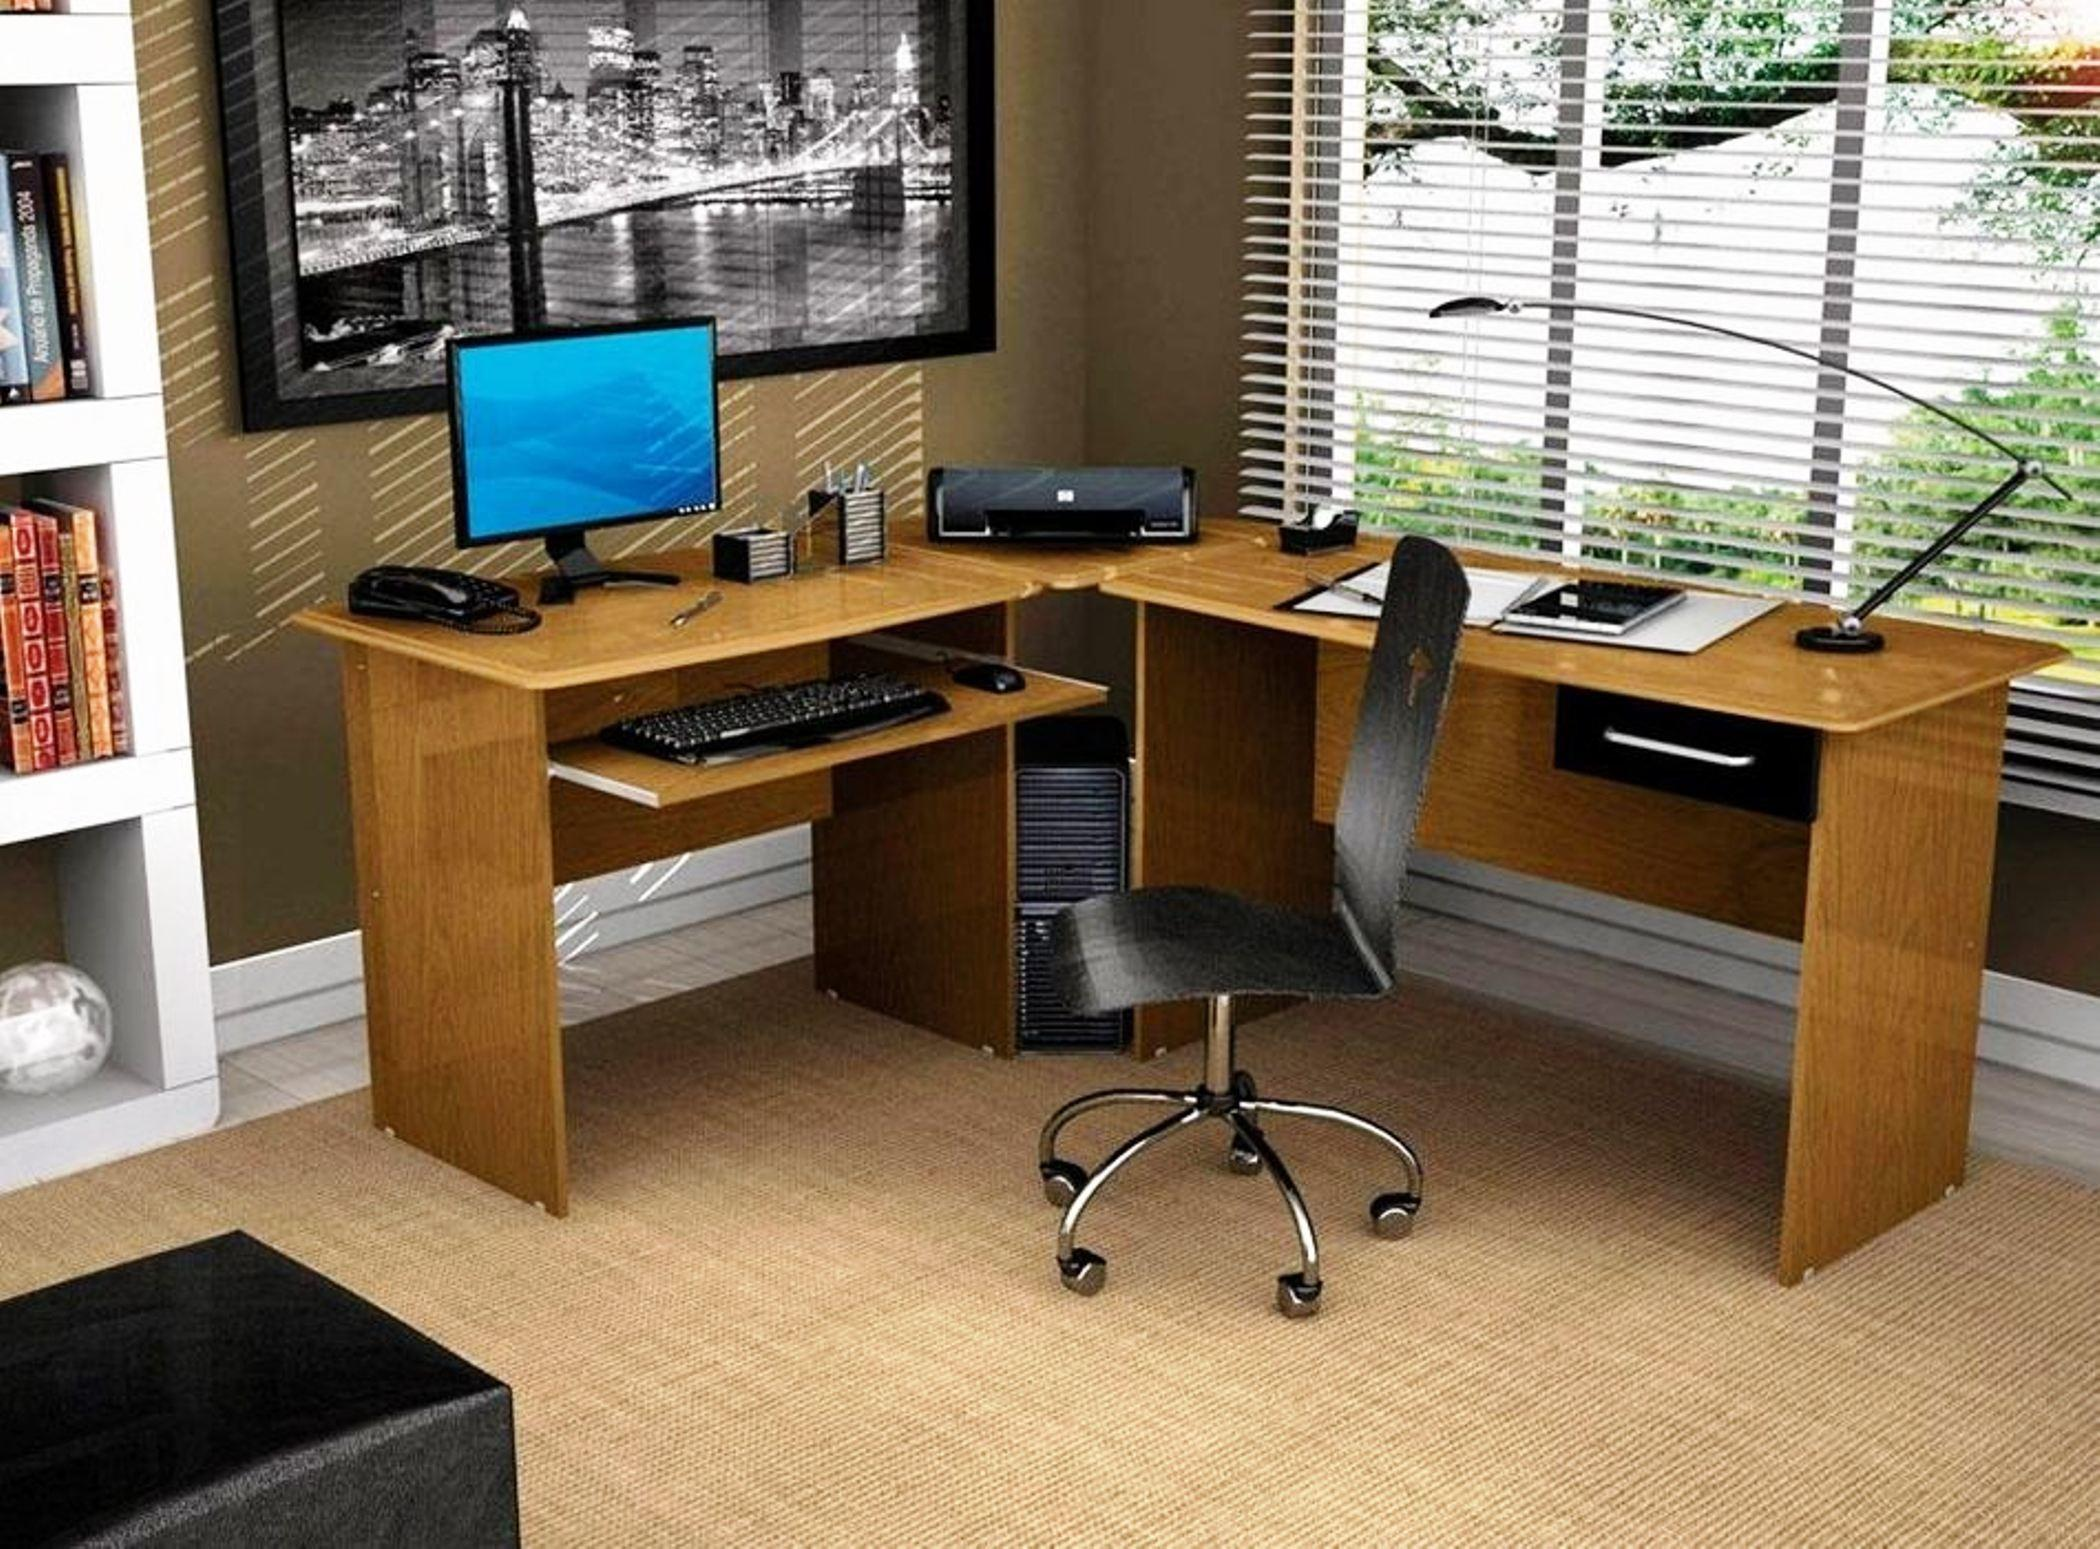 Useful Office Desk Adjustable Every Space Finding